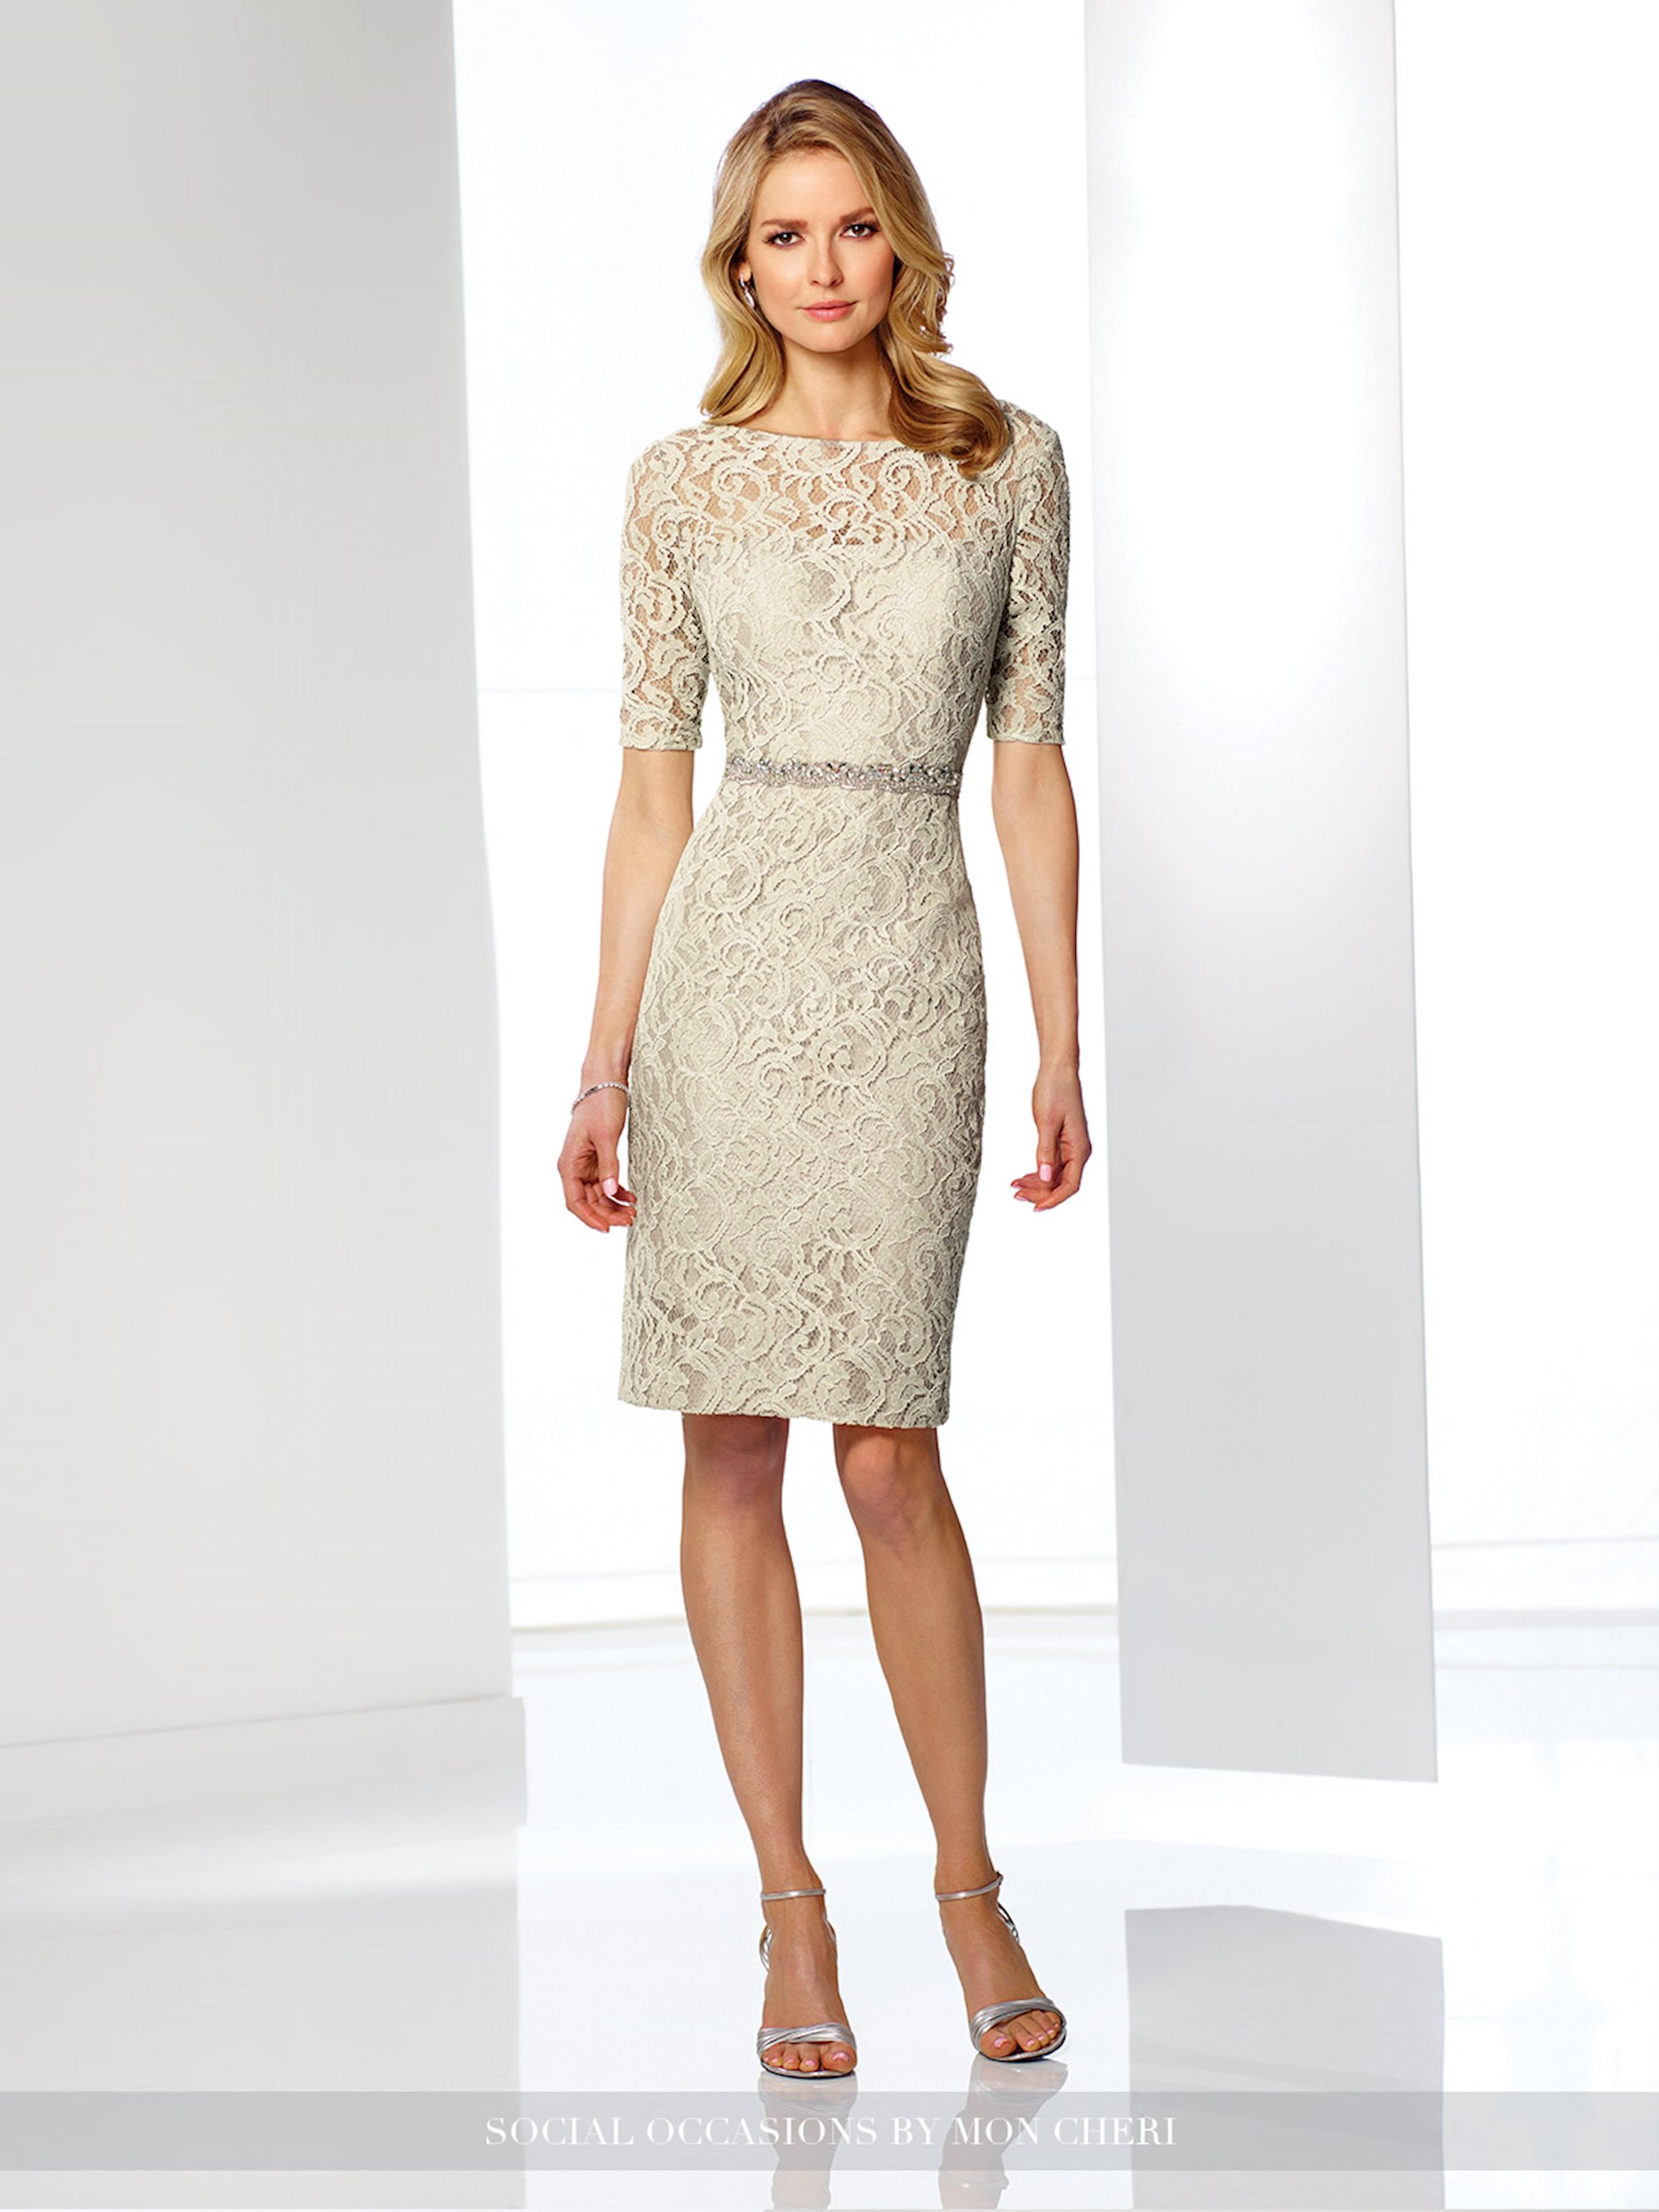 Social Occasions by Mon Cheri - 115873 | Juniper Dress